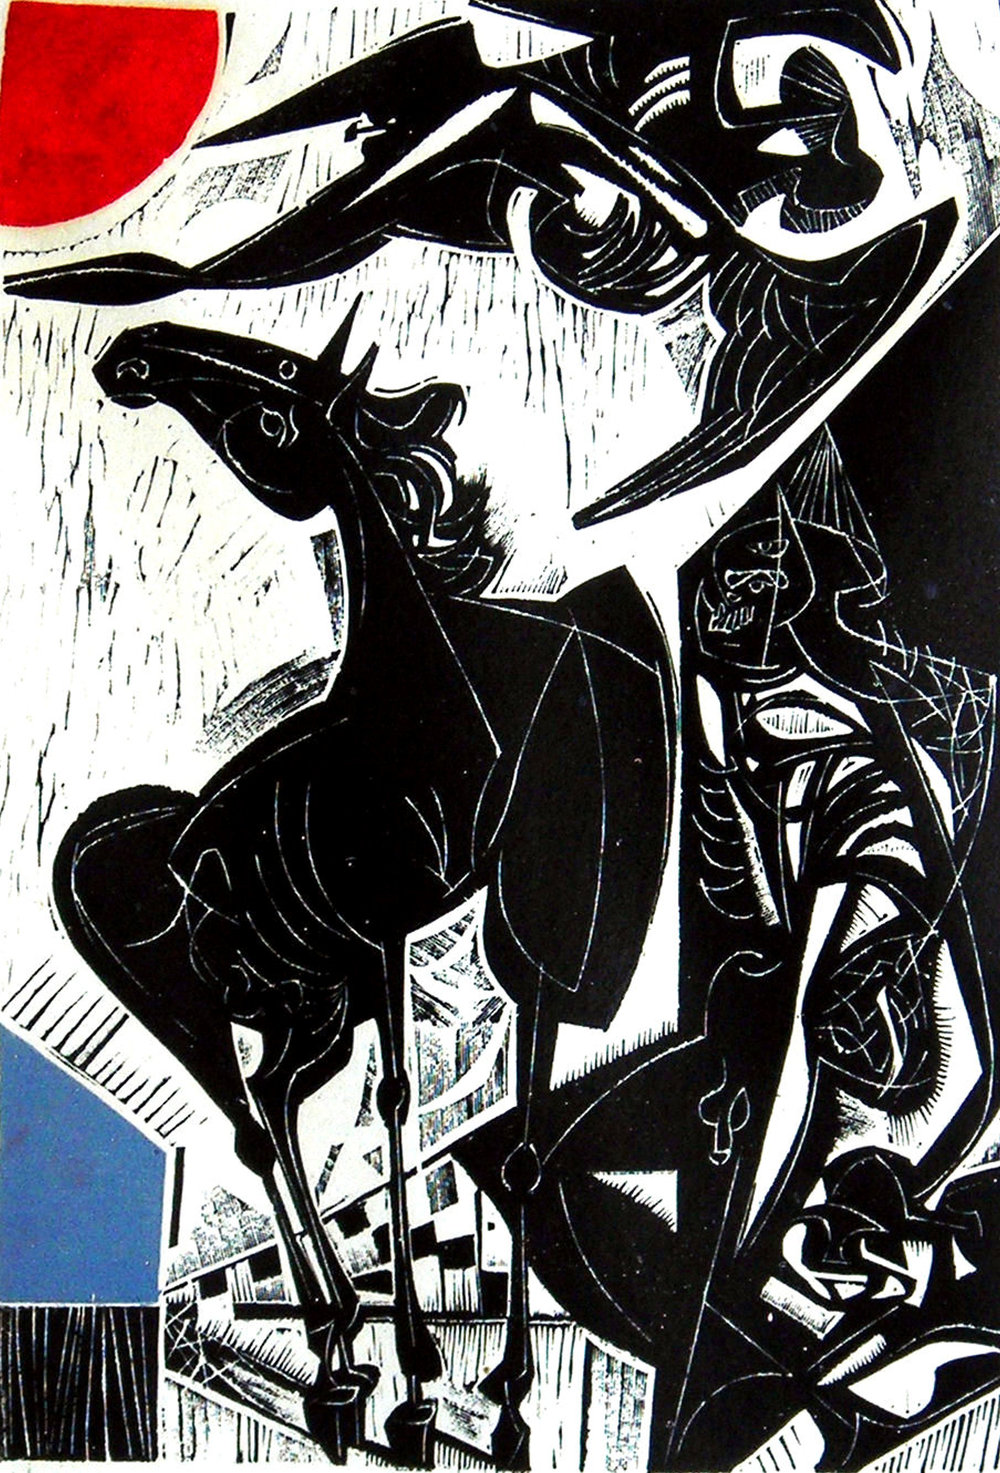 Vincent Hložník (Slovak, 1919-1997), Untitled, from Dreams, 1962, linocut, 23 5/8 x 16 3/8 inches. HHAR 1421.